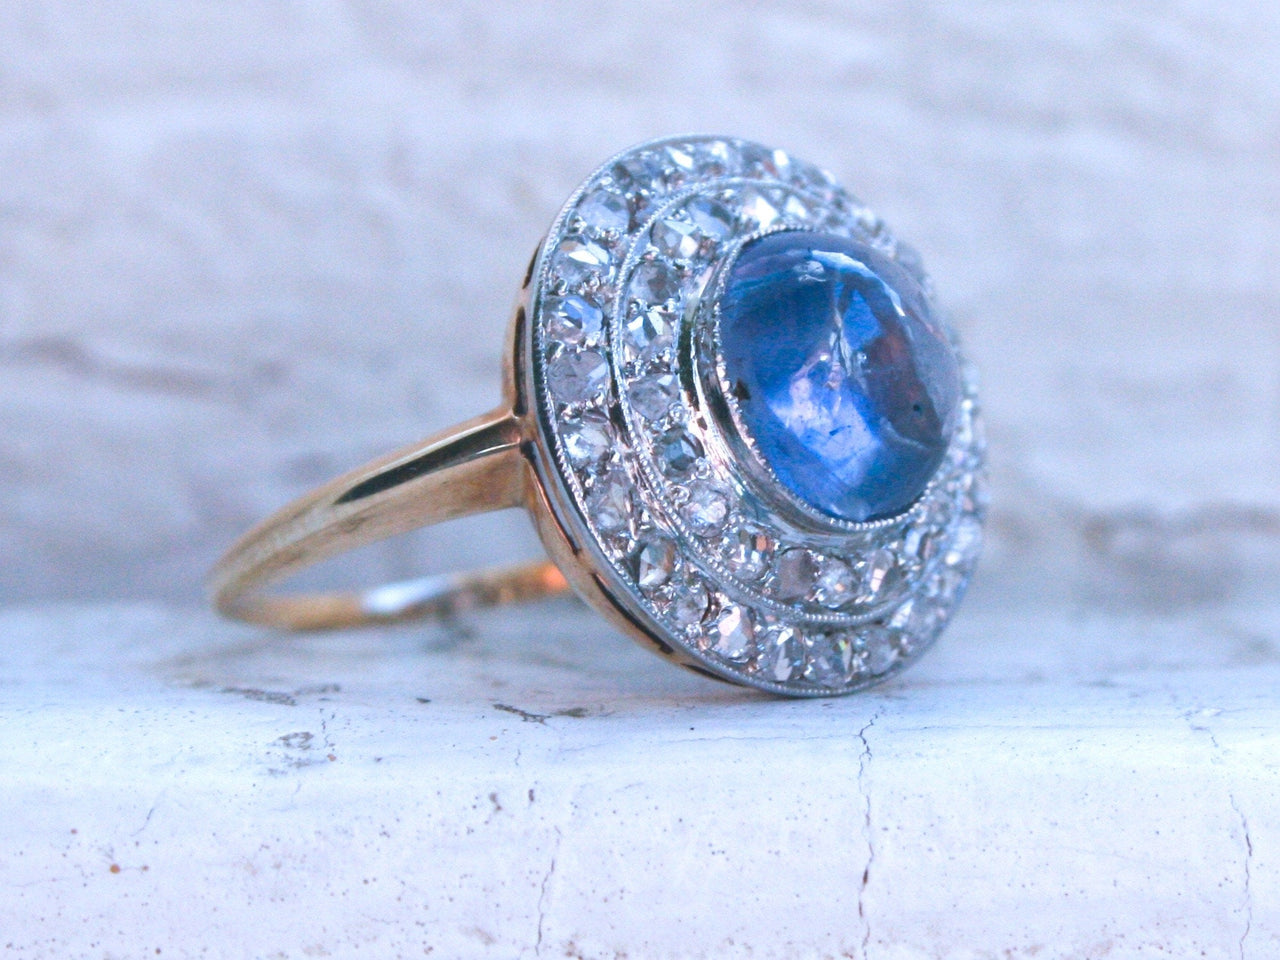 Beautiful Antique 14K Yellow Gold/ Platinum Diamond and Sapphire Cabochon Engagement Ring - 3.69ct.